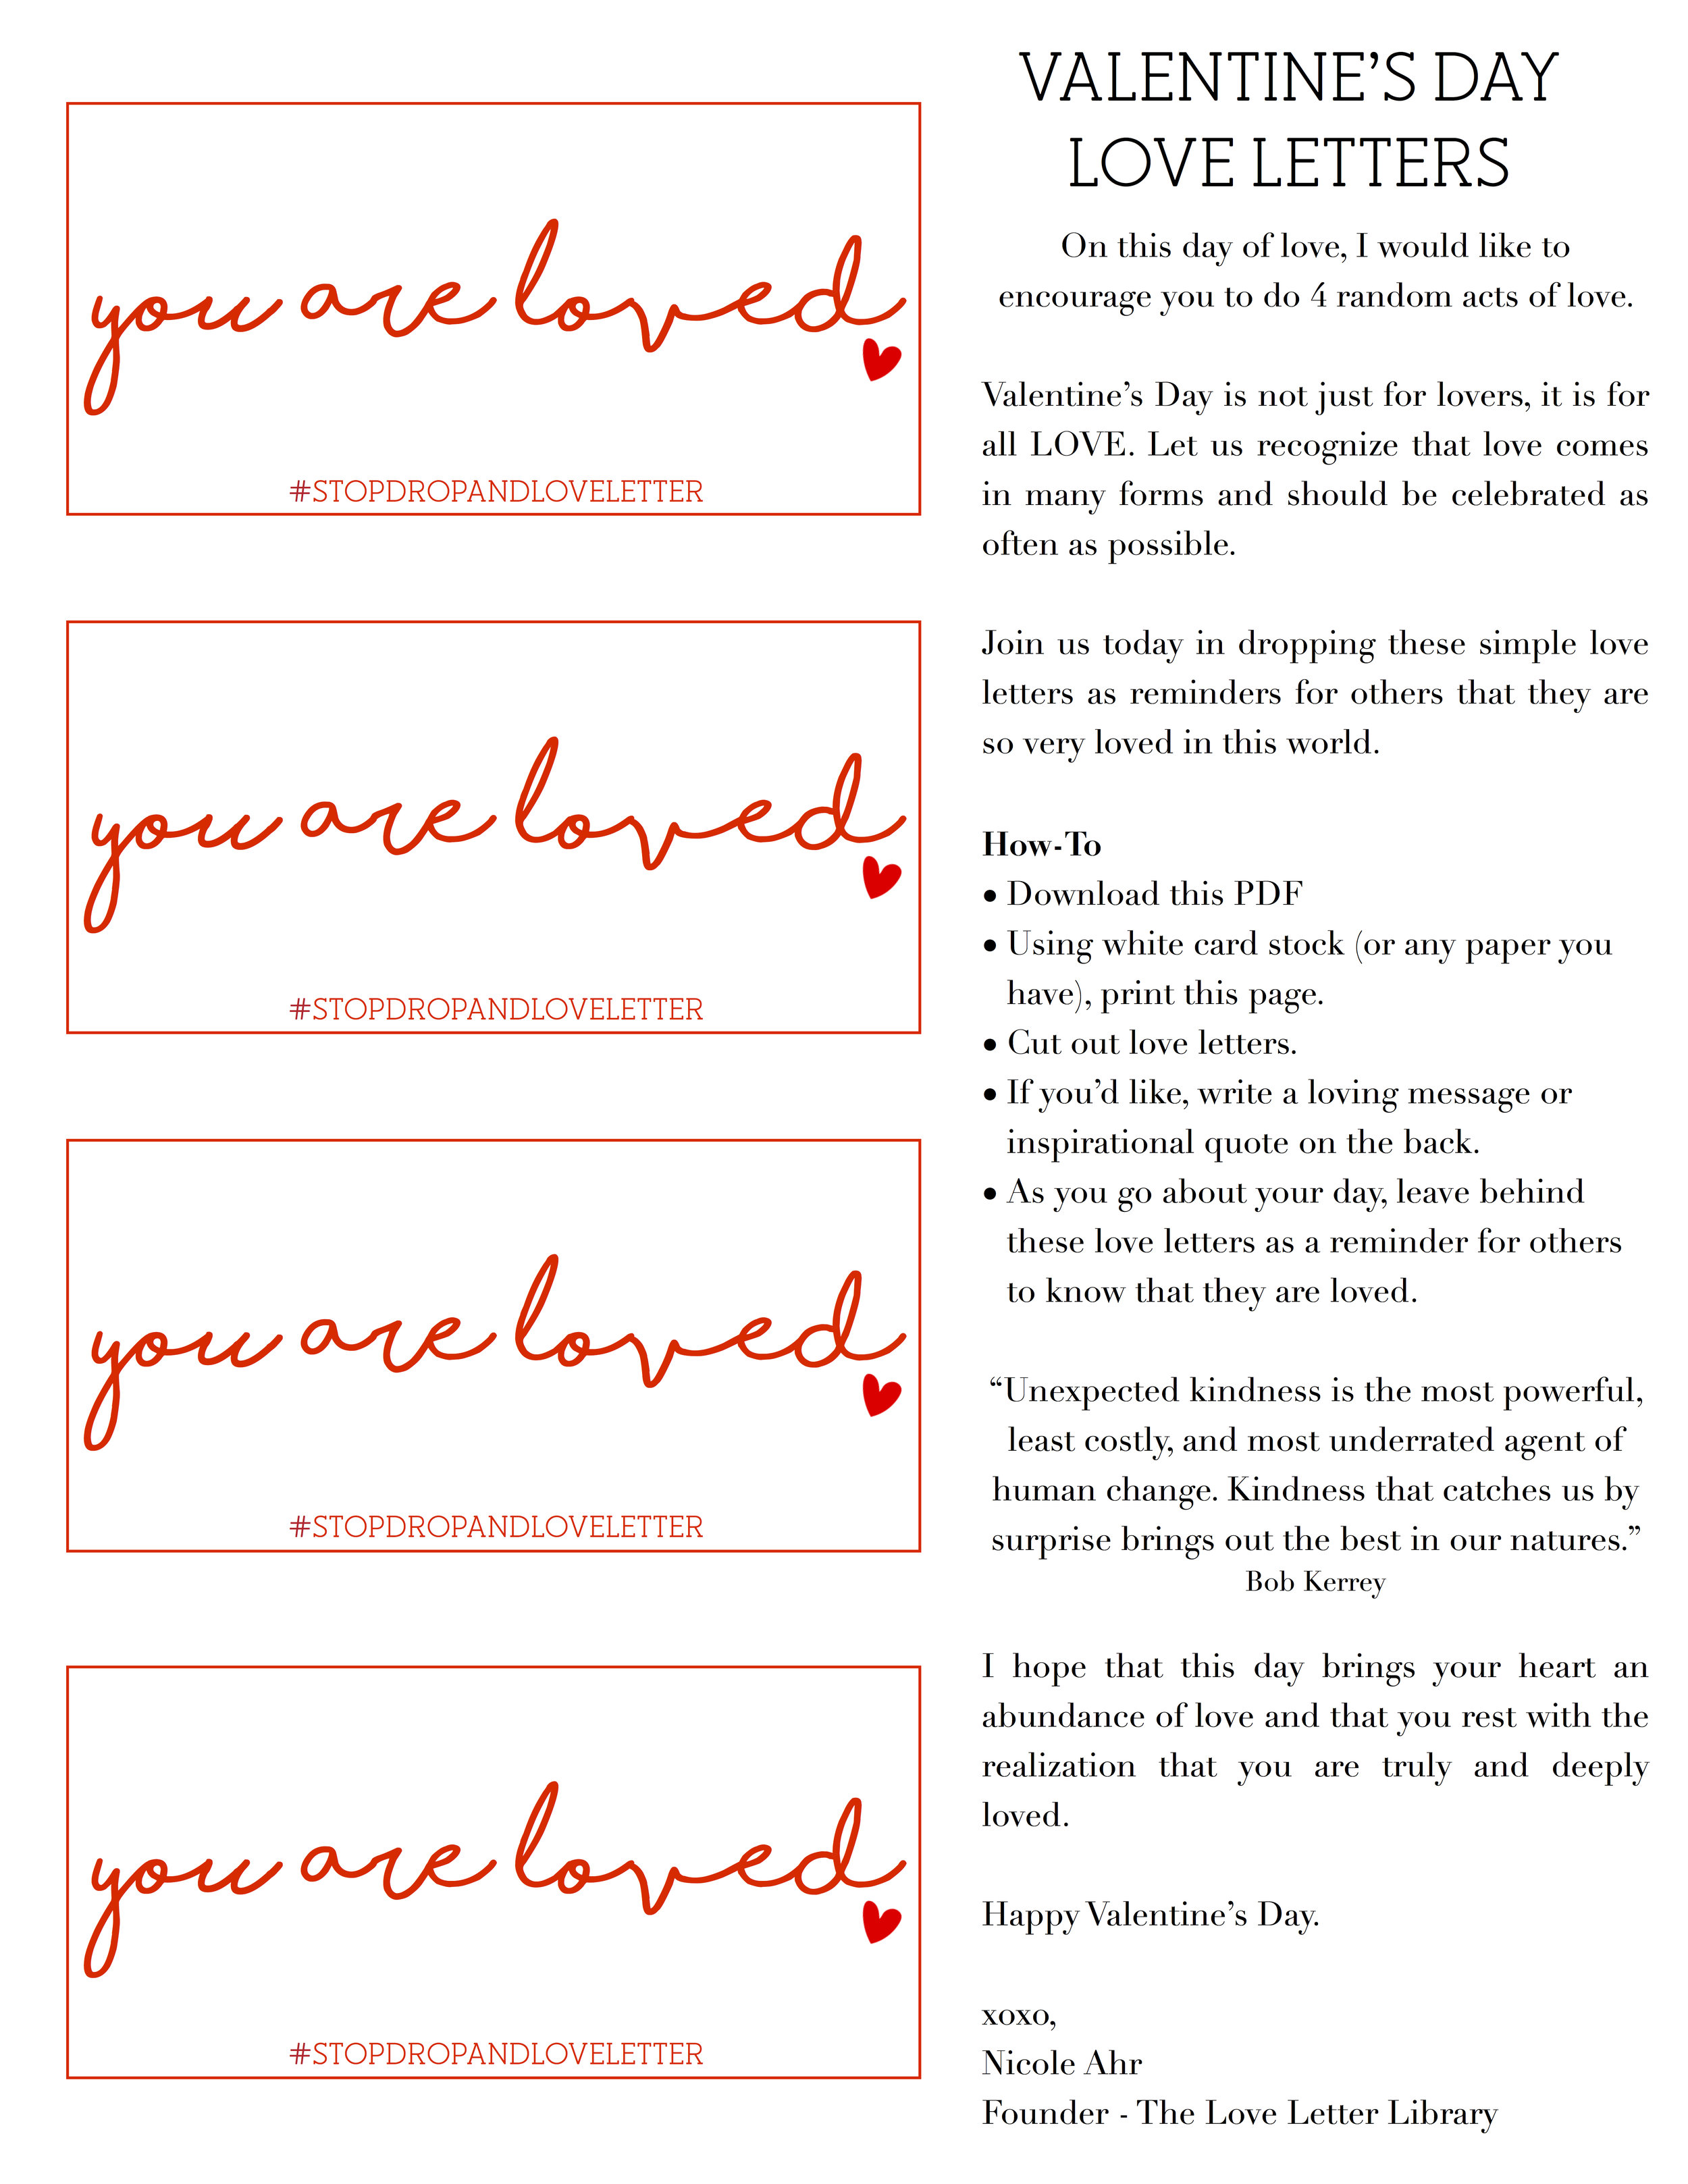 Valentine's Day Love Letters - Downloadable.jpg